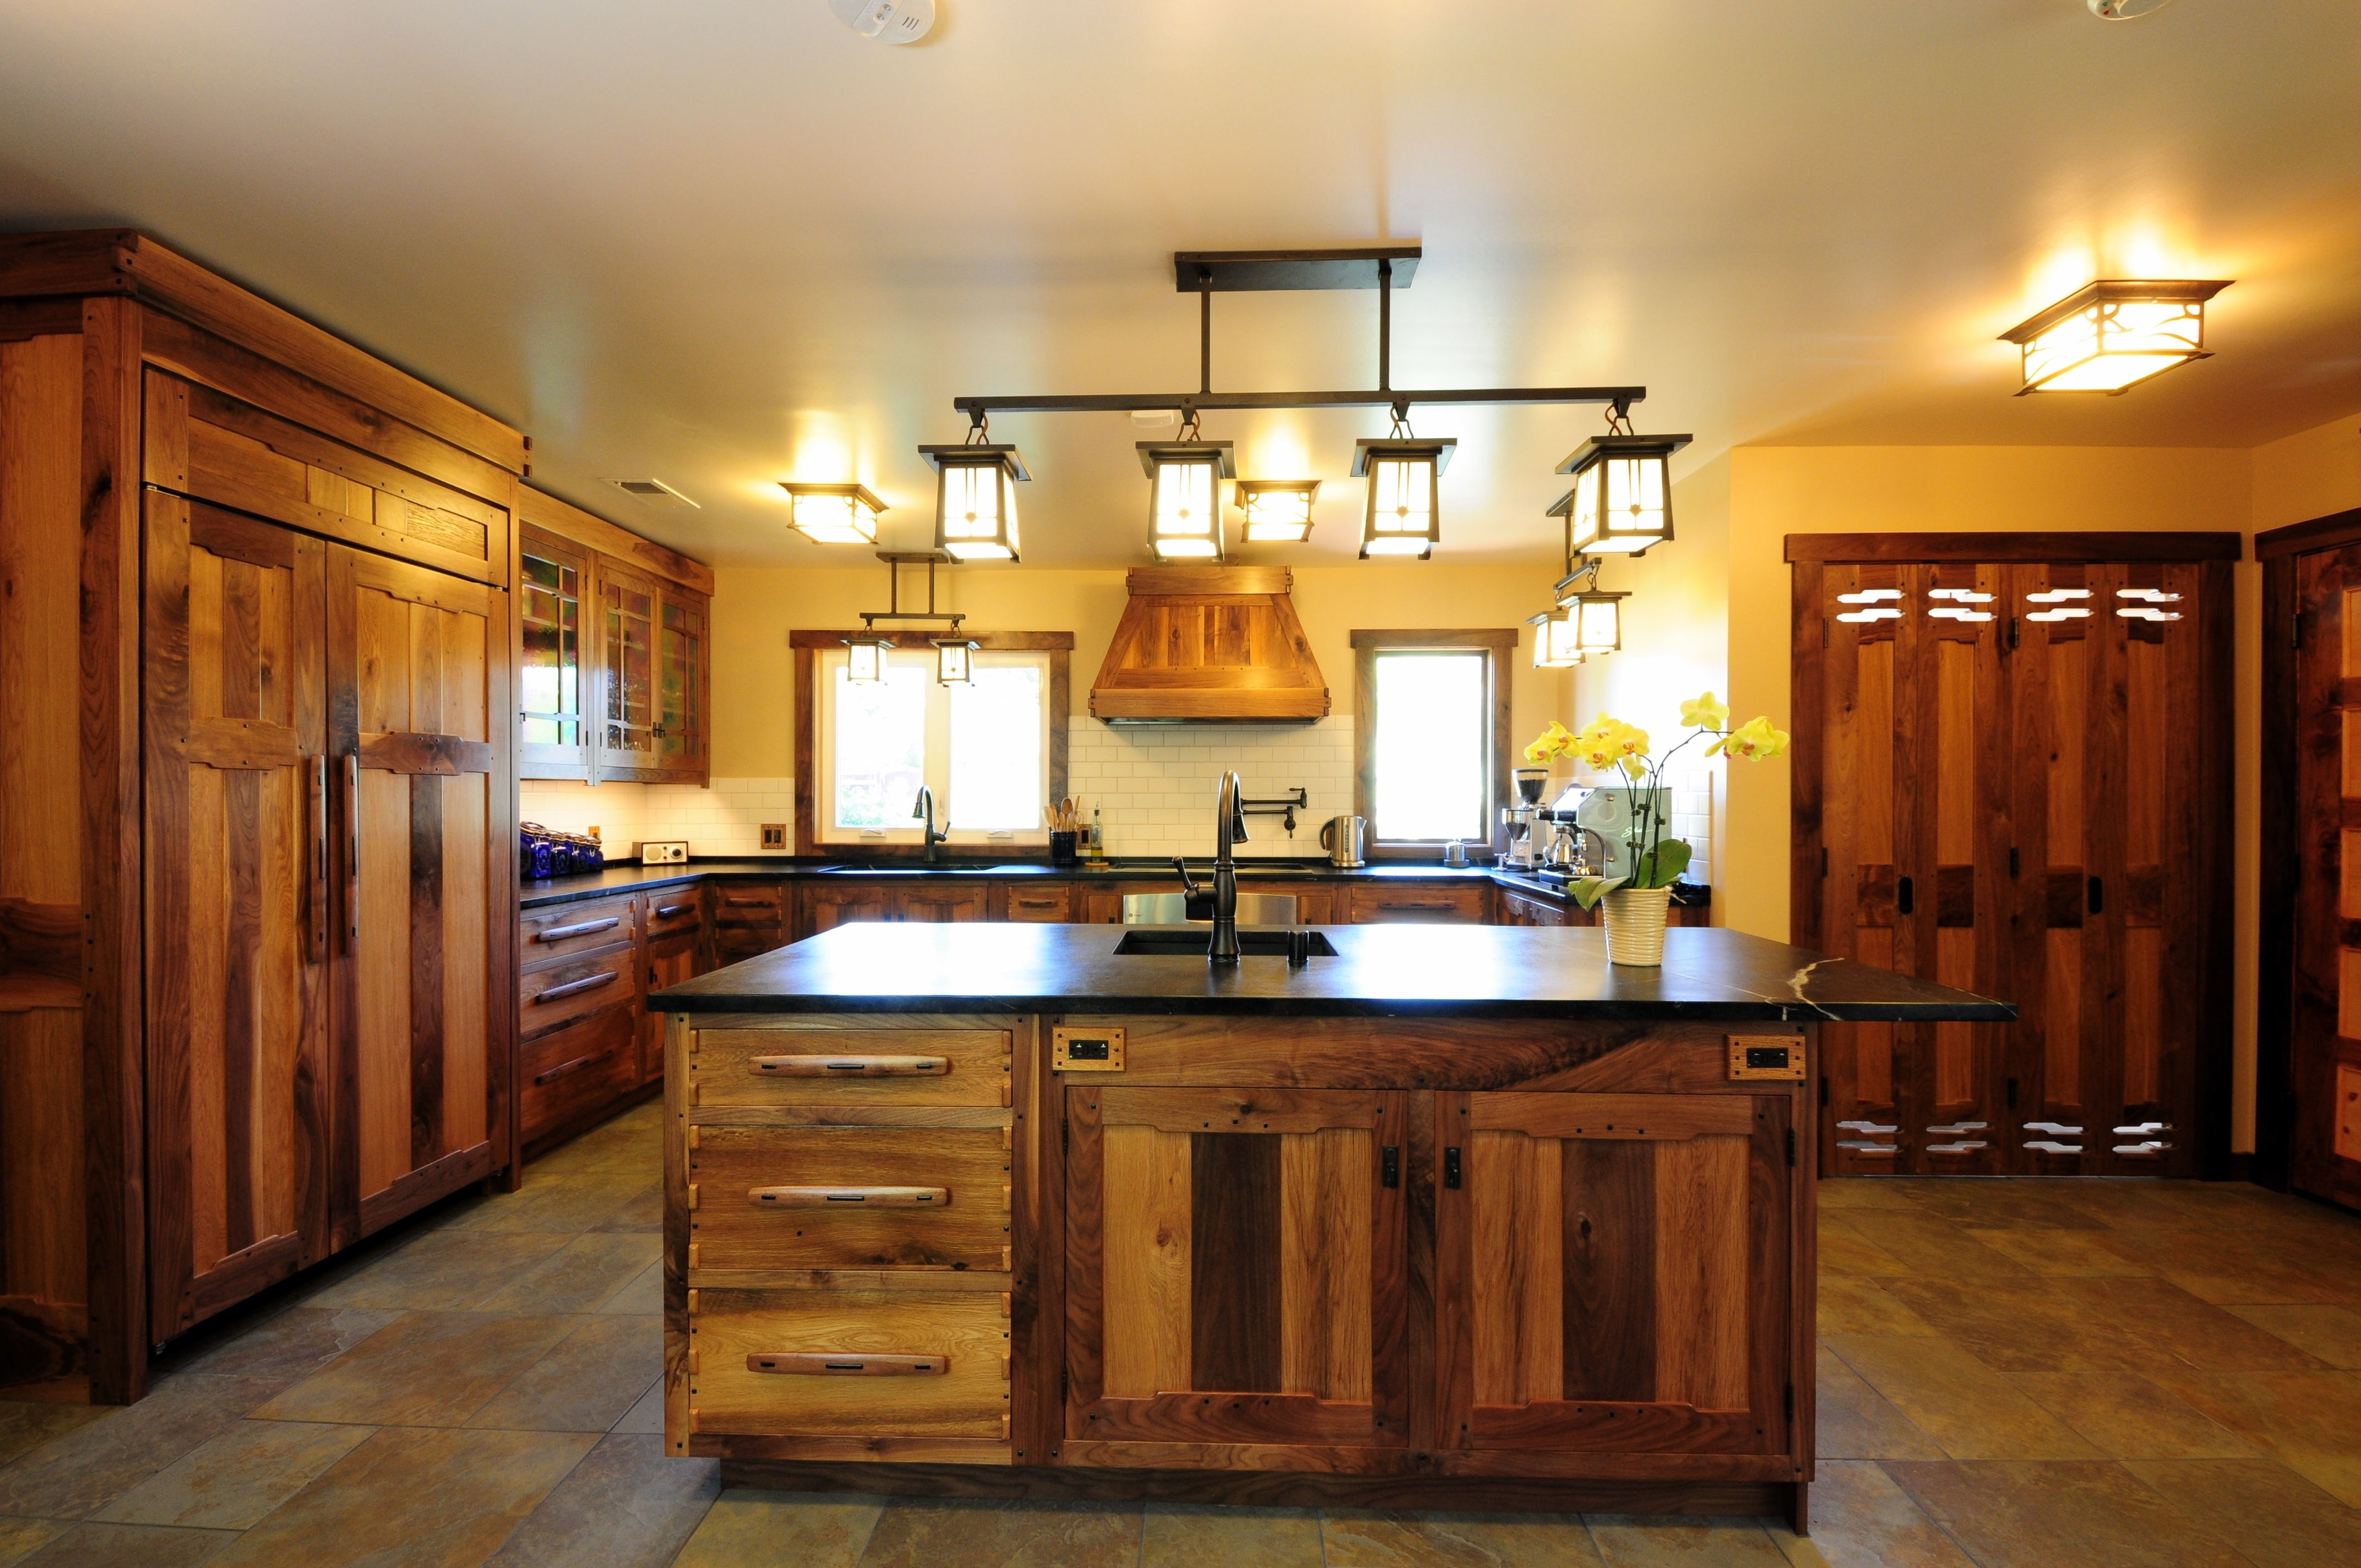 Favorite Light : Kitchen Flush Ceiling Lights Led For Home Outdoor Throughout Intended For Outdoor Garage Ceiling Lights (View 4 of 20)